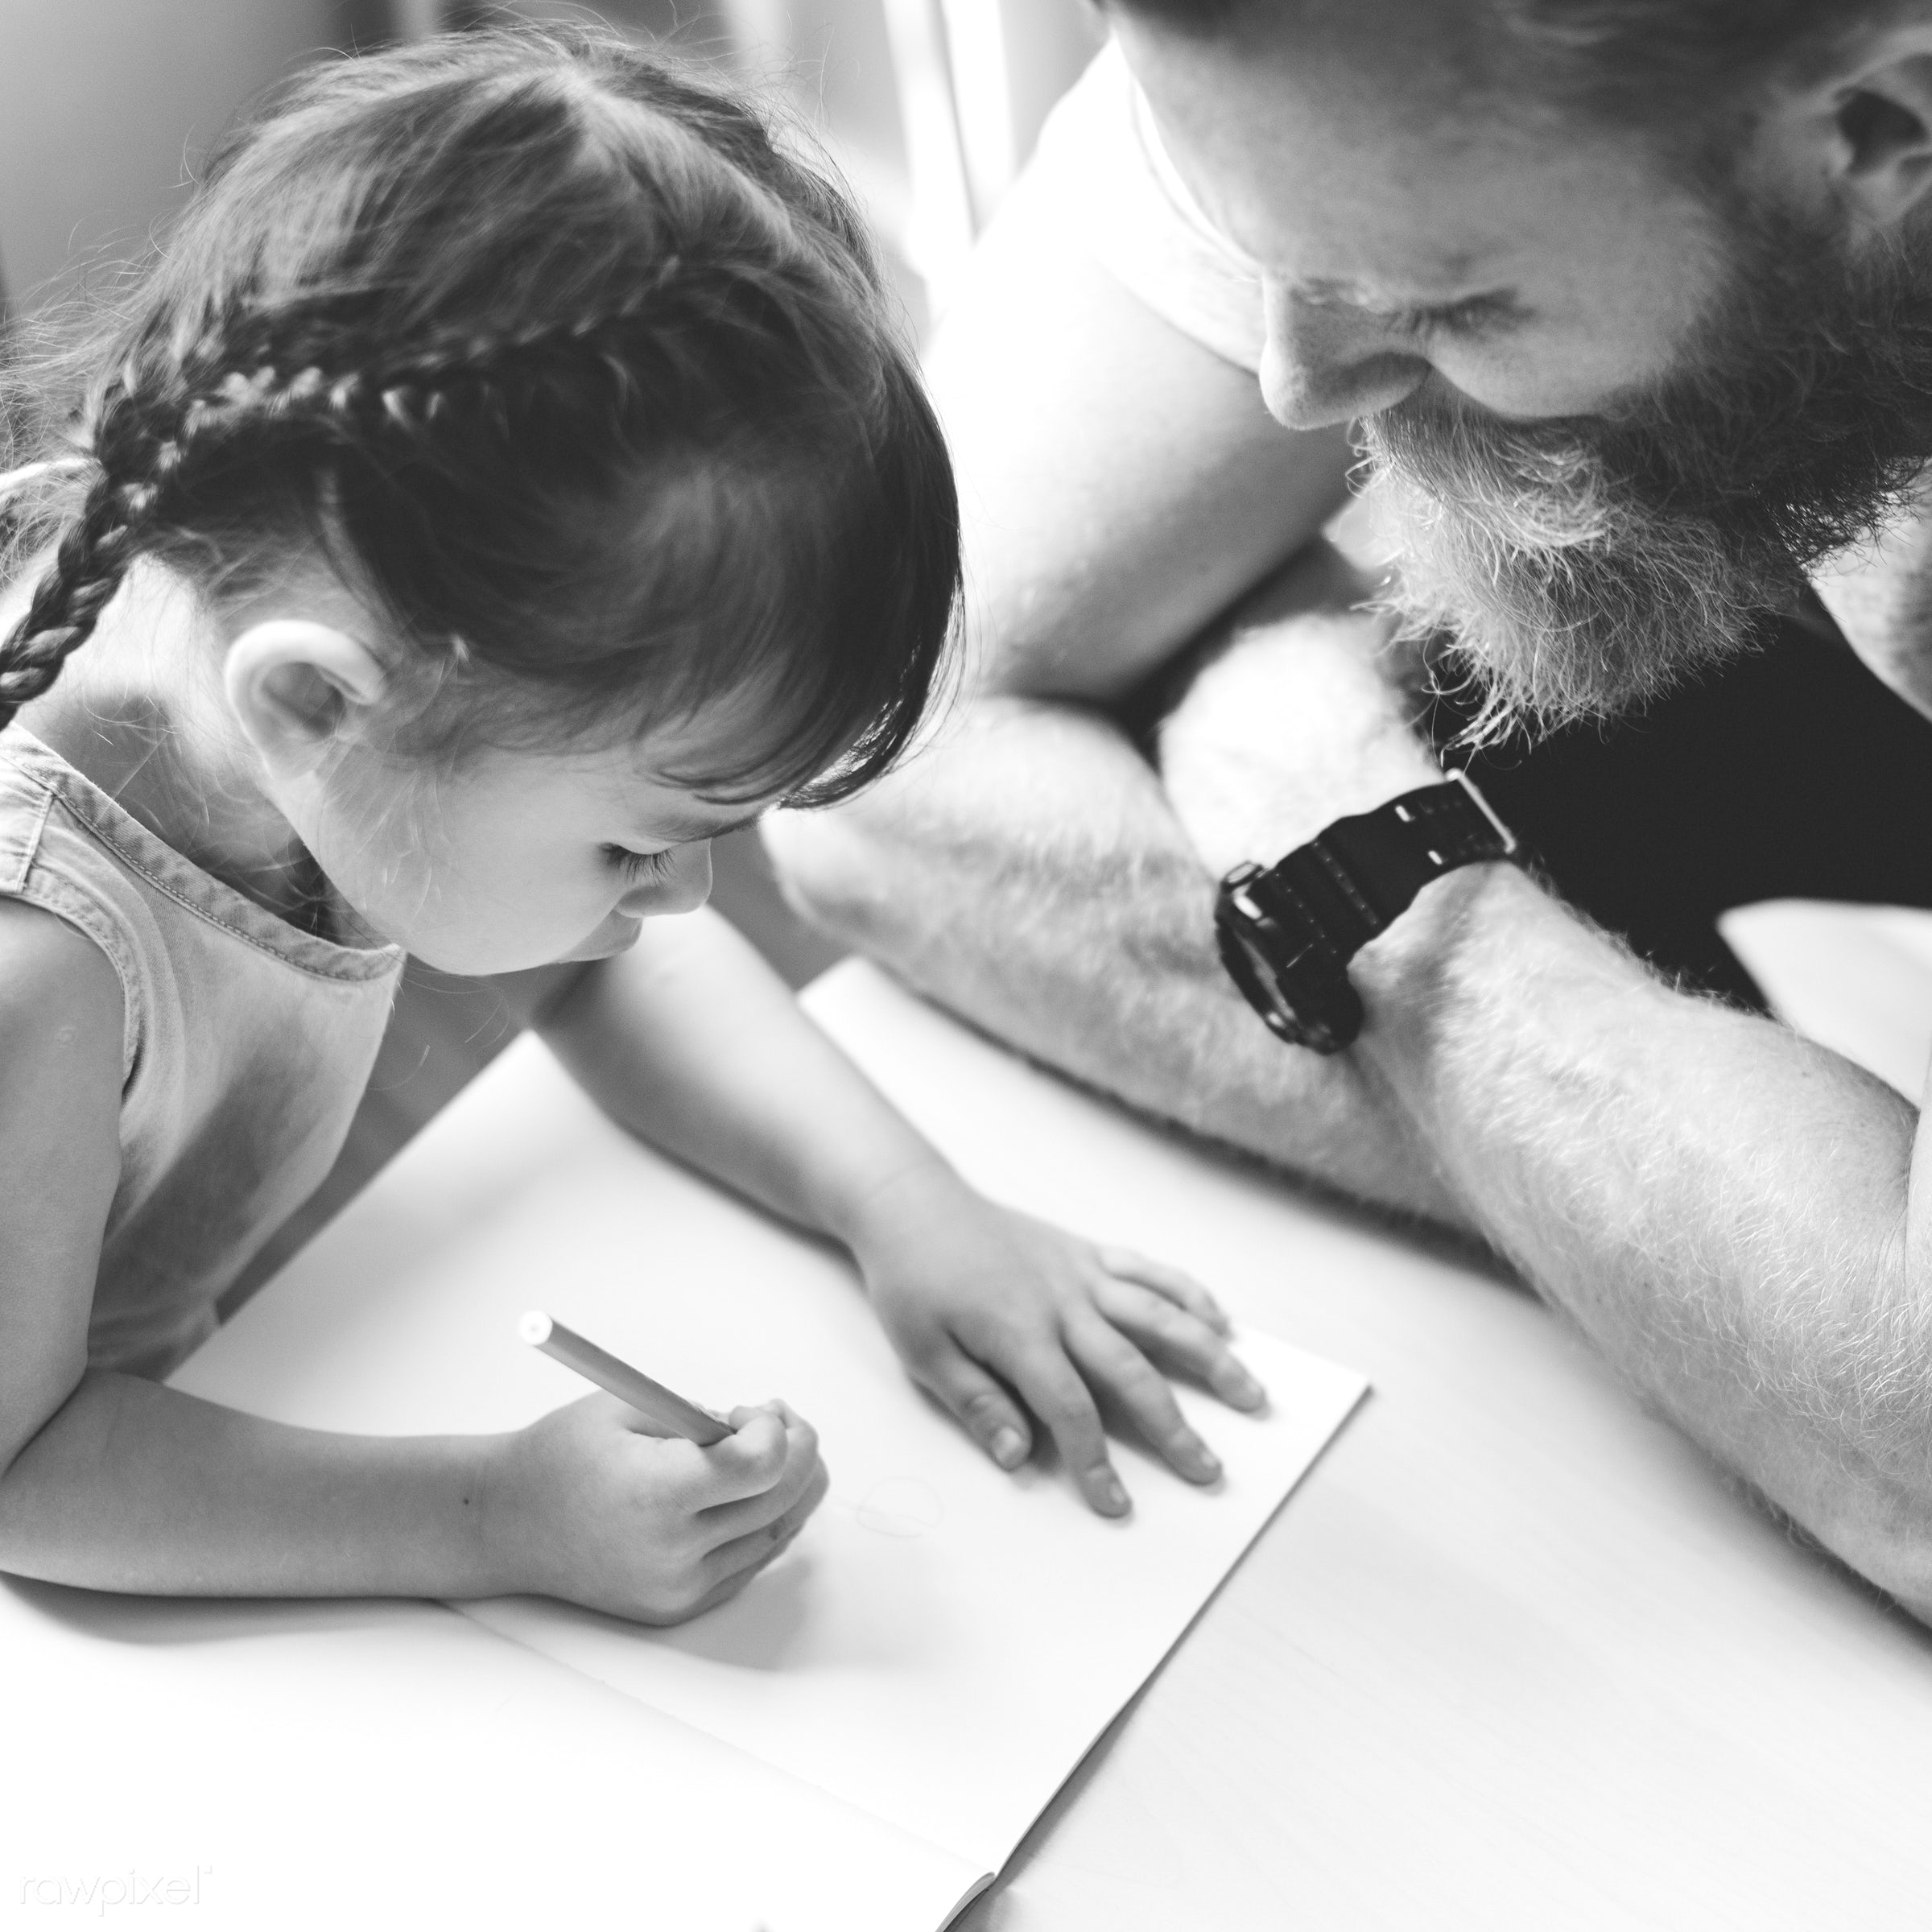 adolescence, bonding, care, cheerful, child, childhood, communication, connection, cute, dad, daughter, drawing, education,...